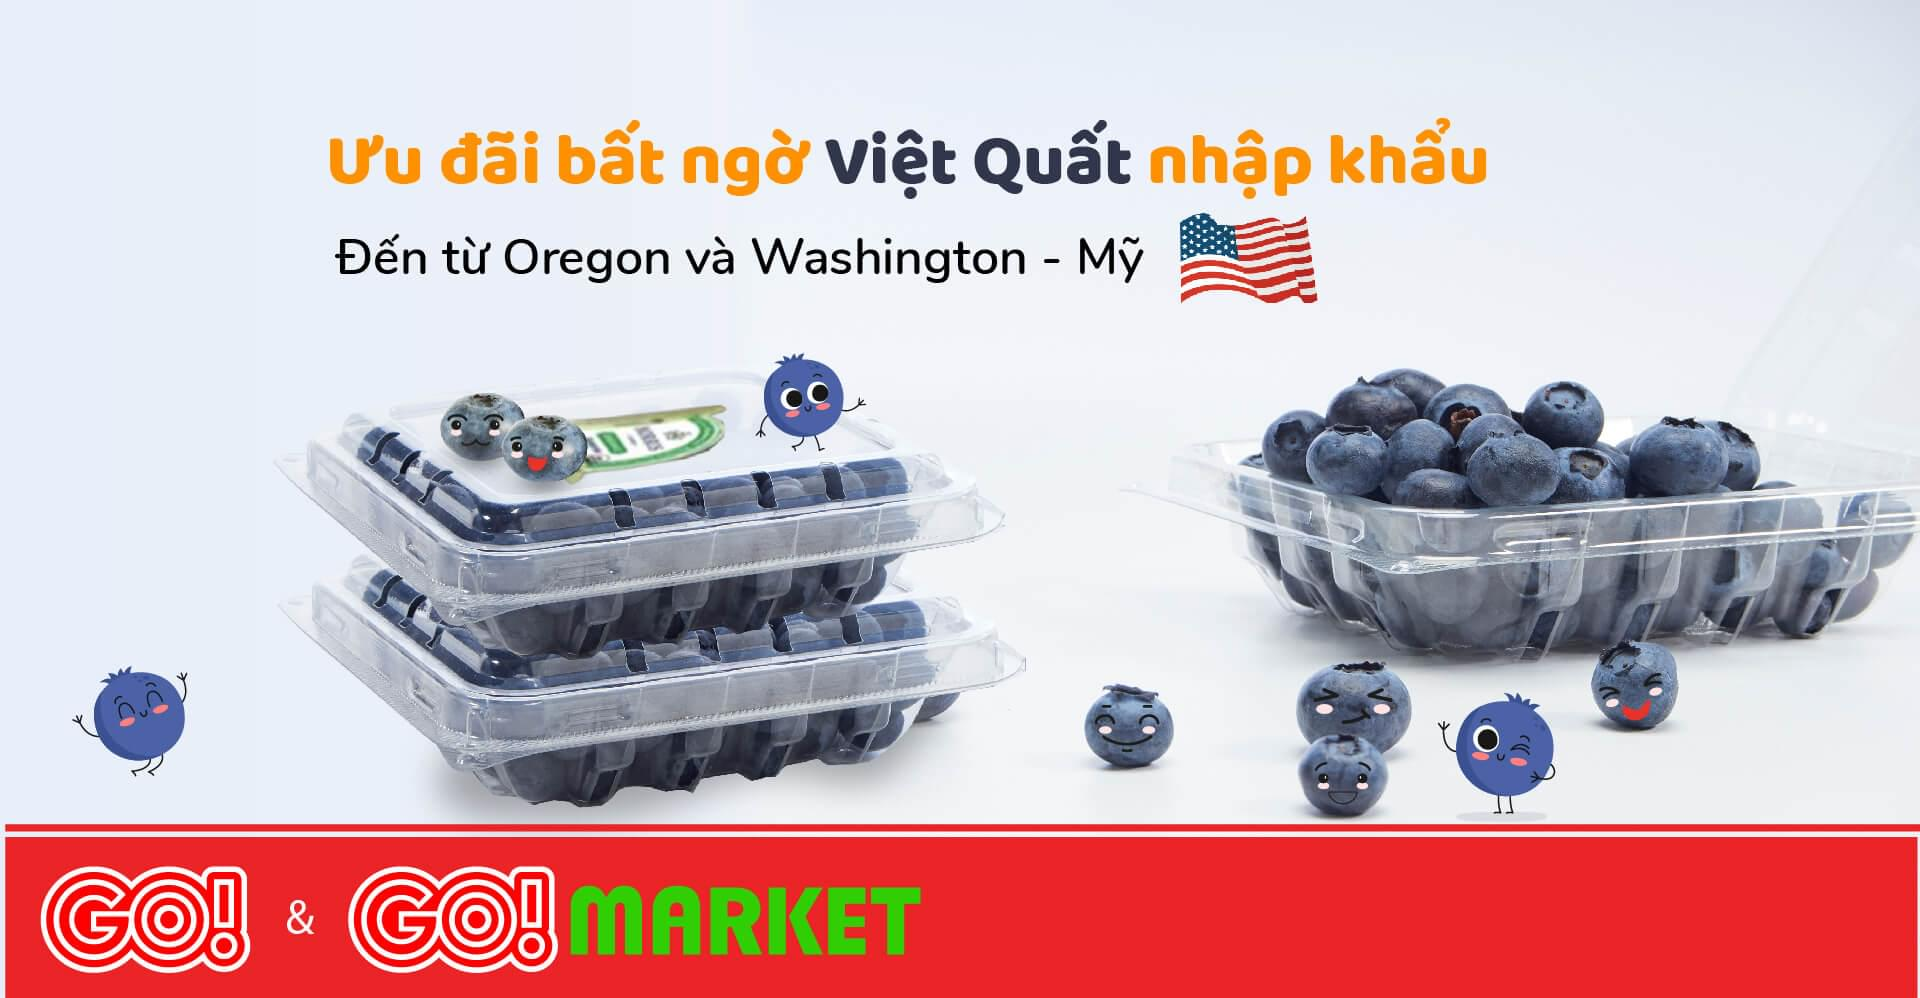 Delicious blueberries imported straight from the US - only at GO!